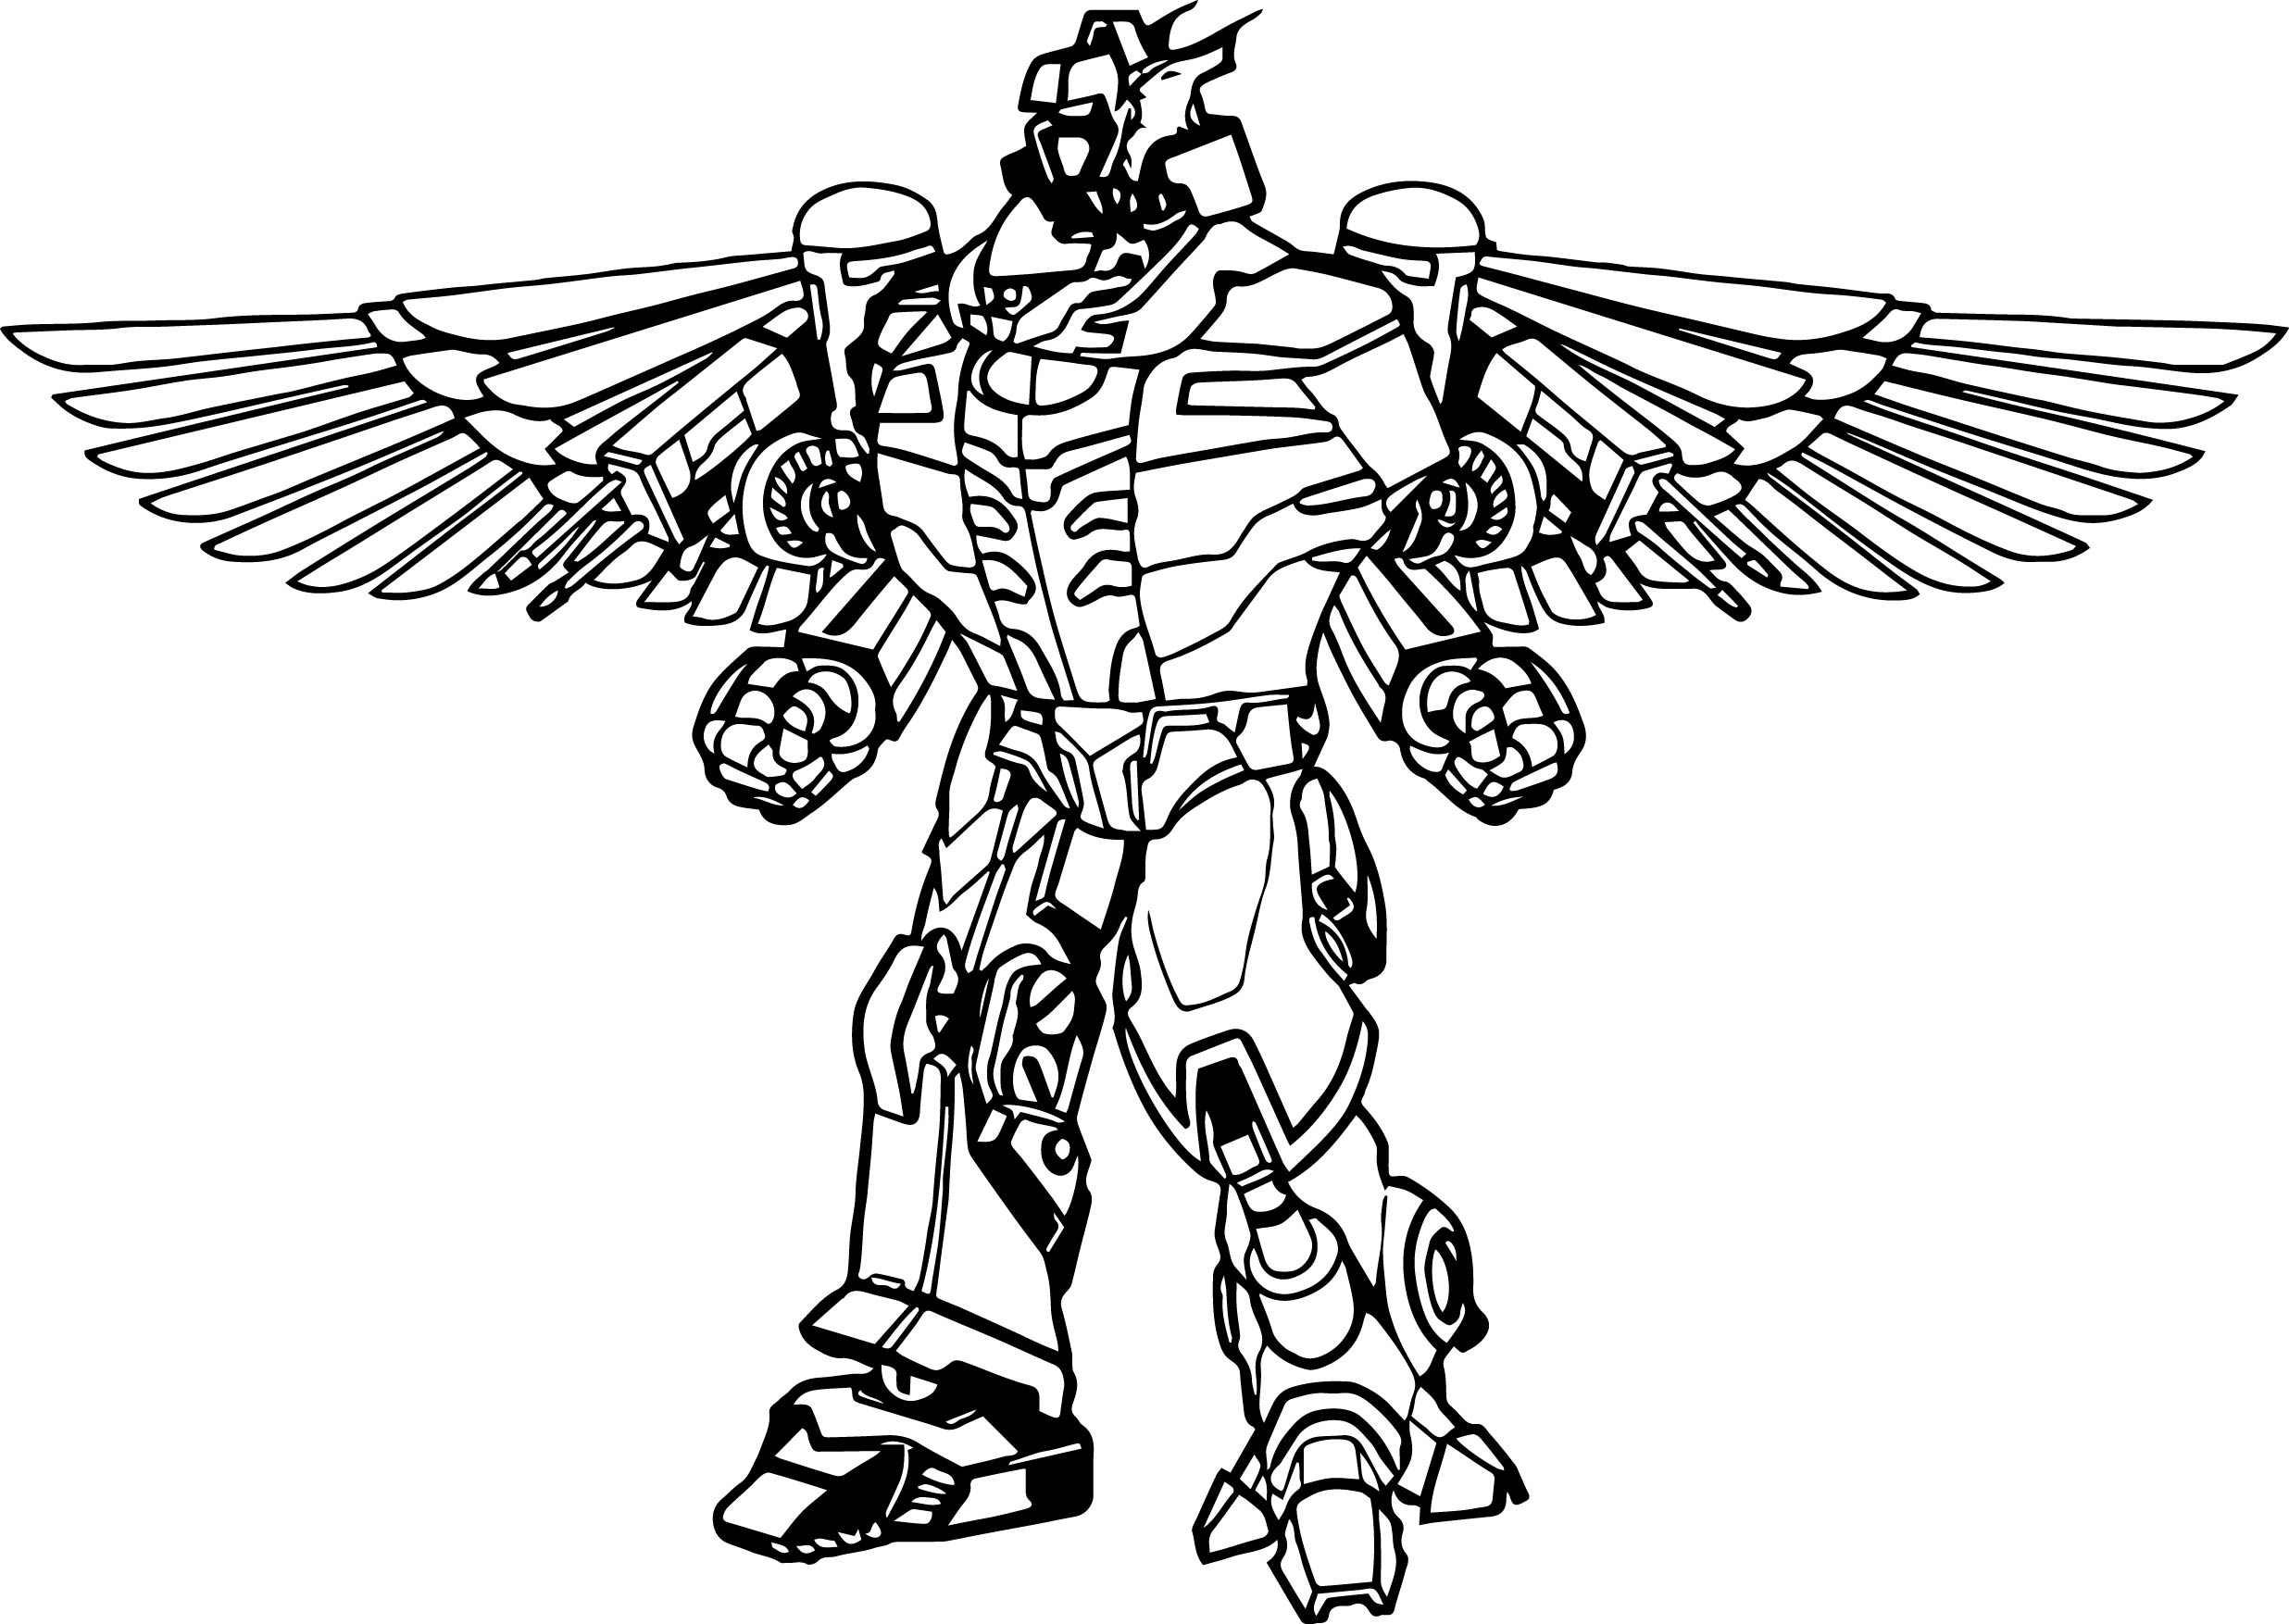 Power rangers dino charge coloring pages power rangers robot coloring page